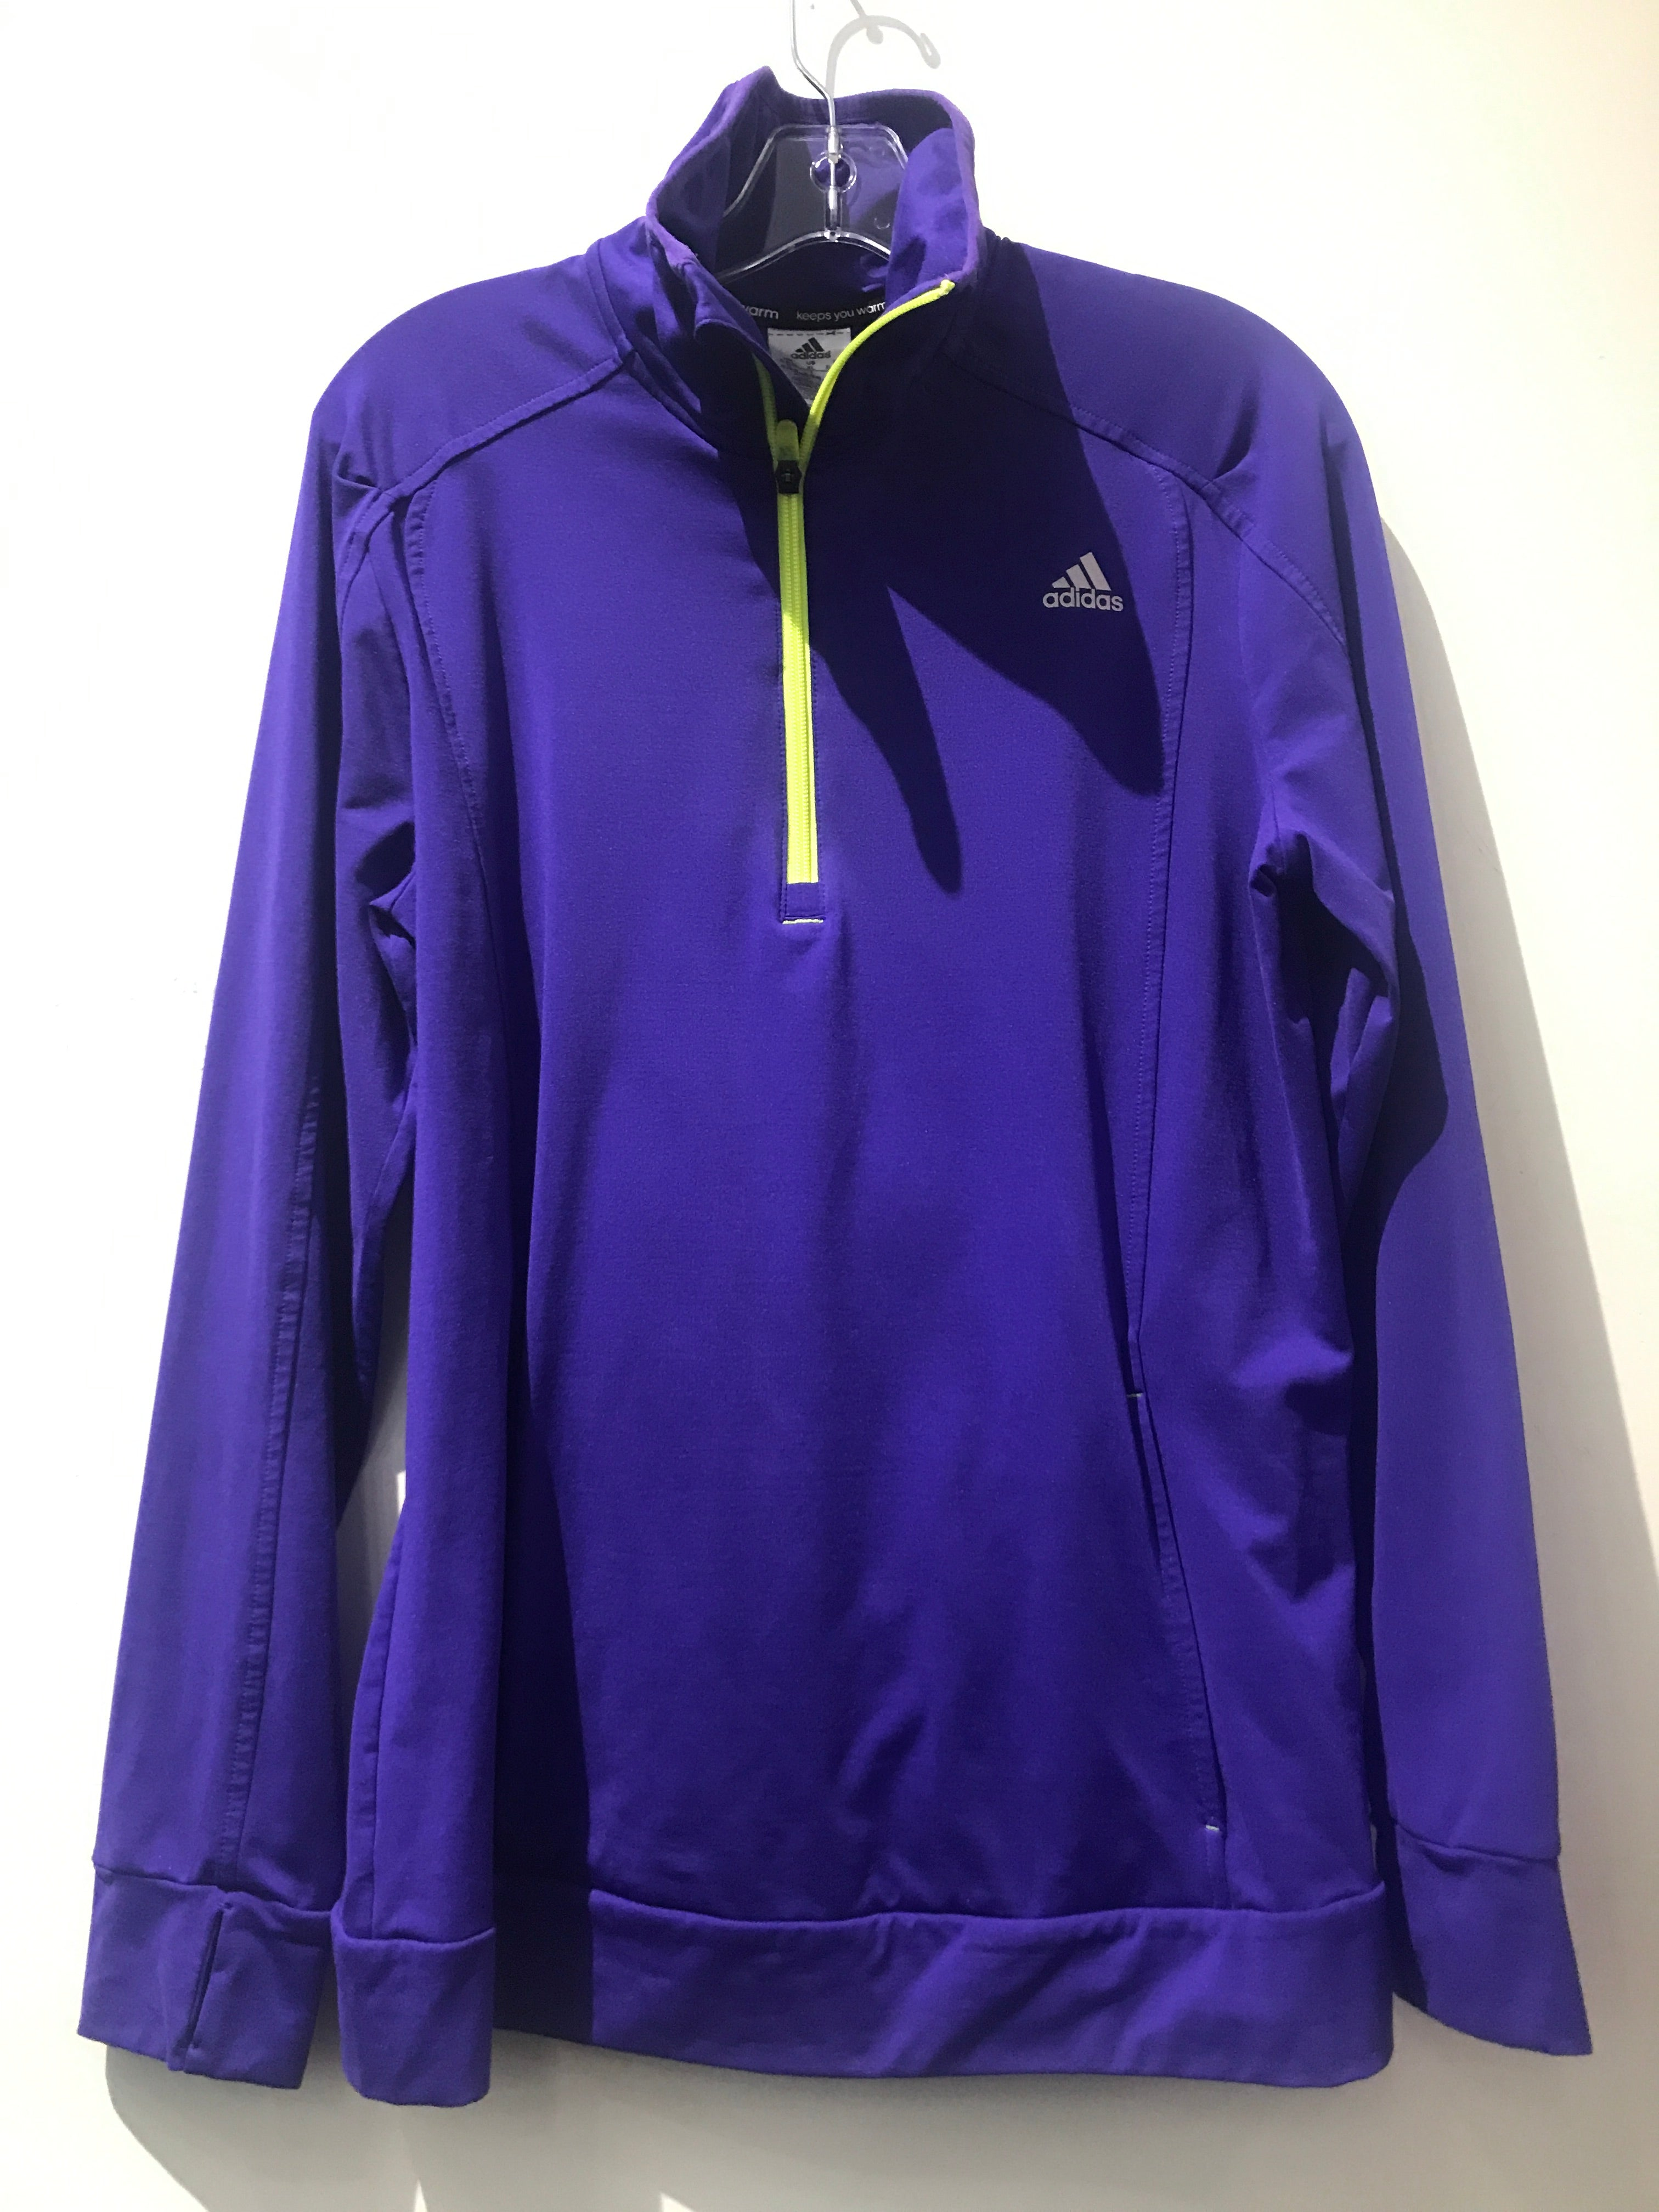 Adidas Track Top: Sz XL